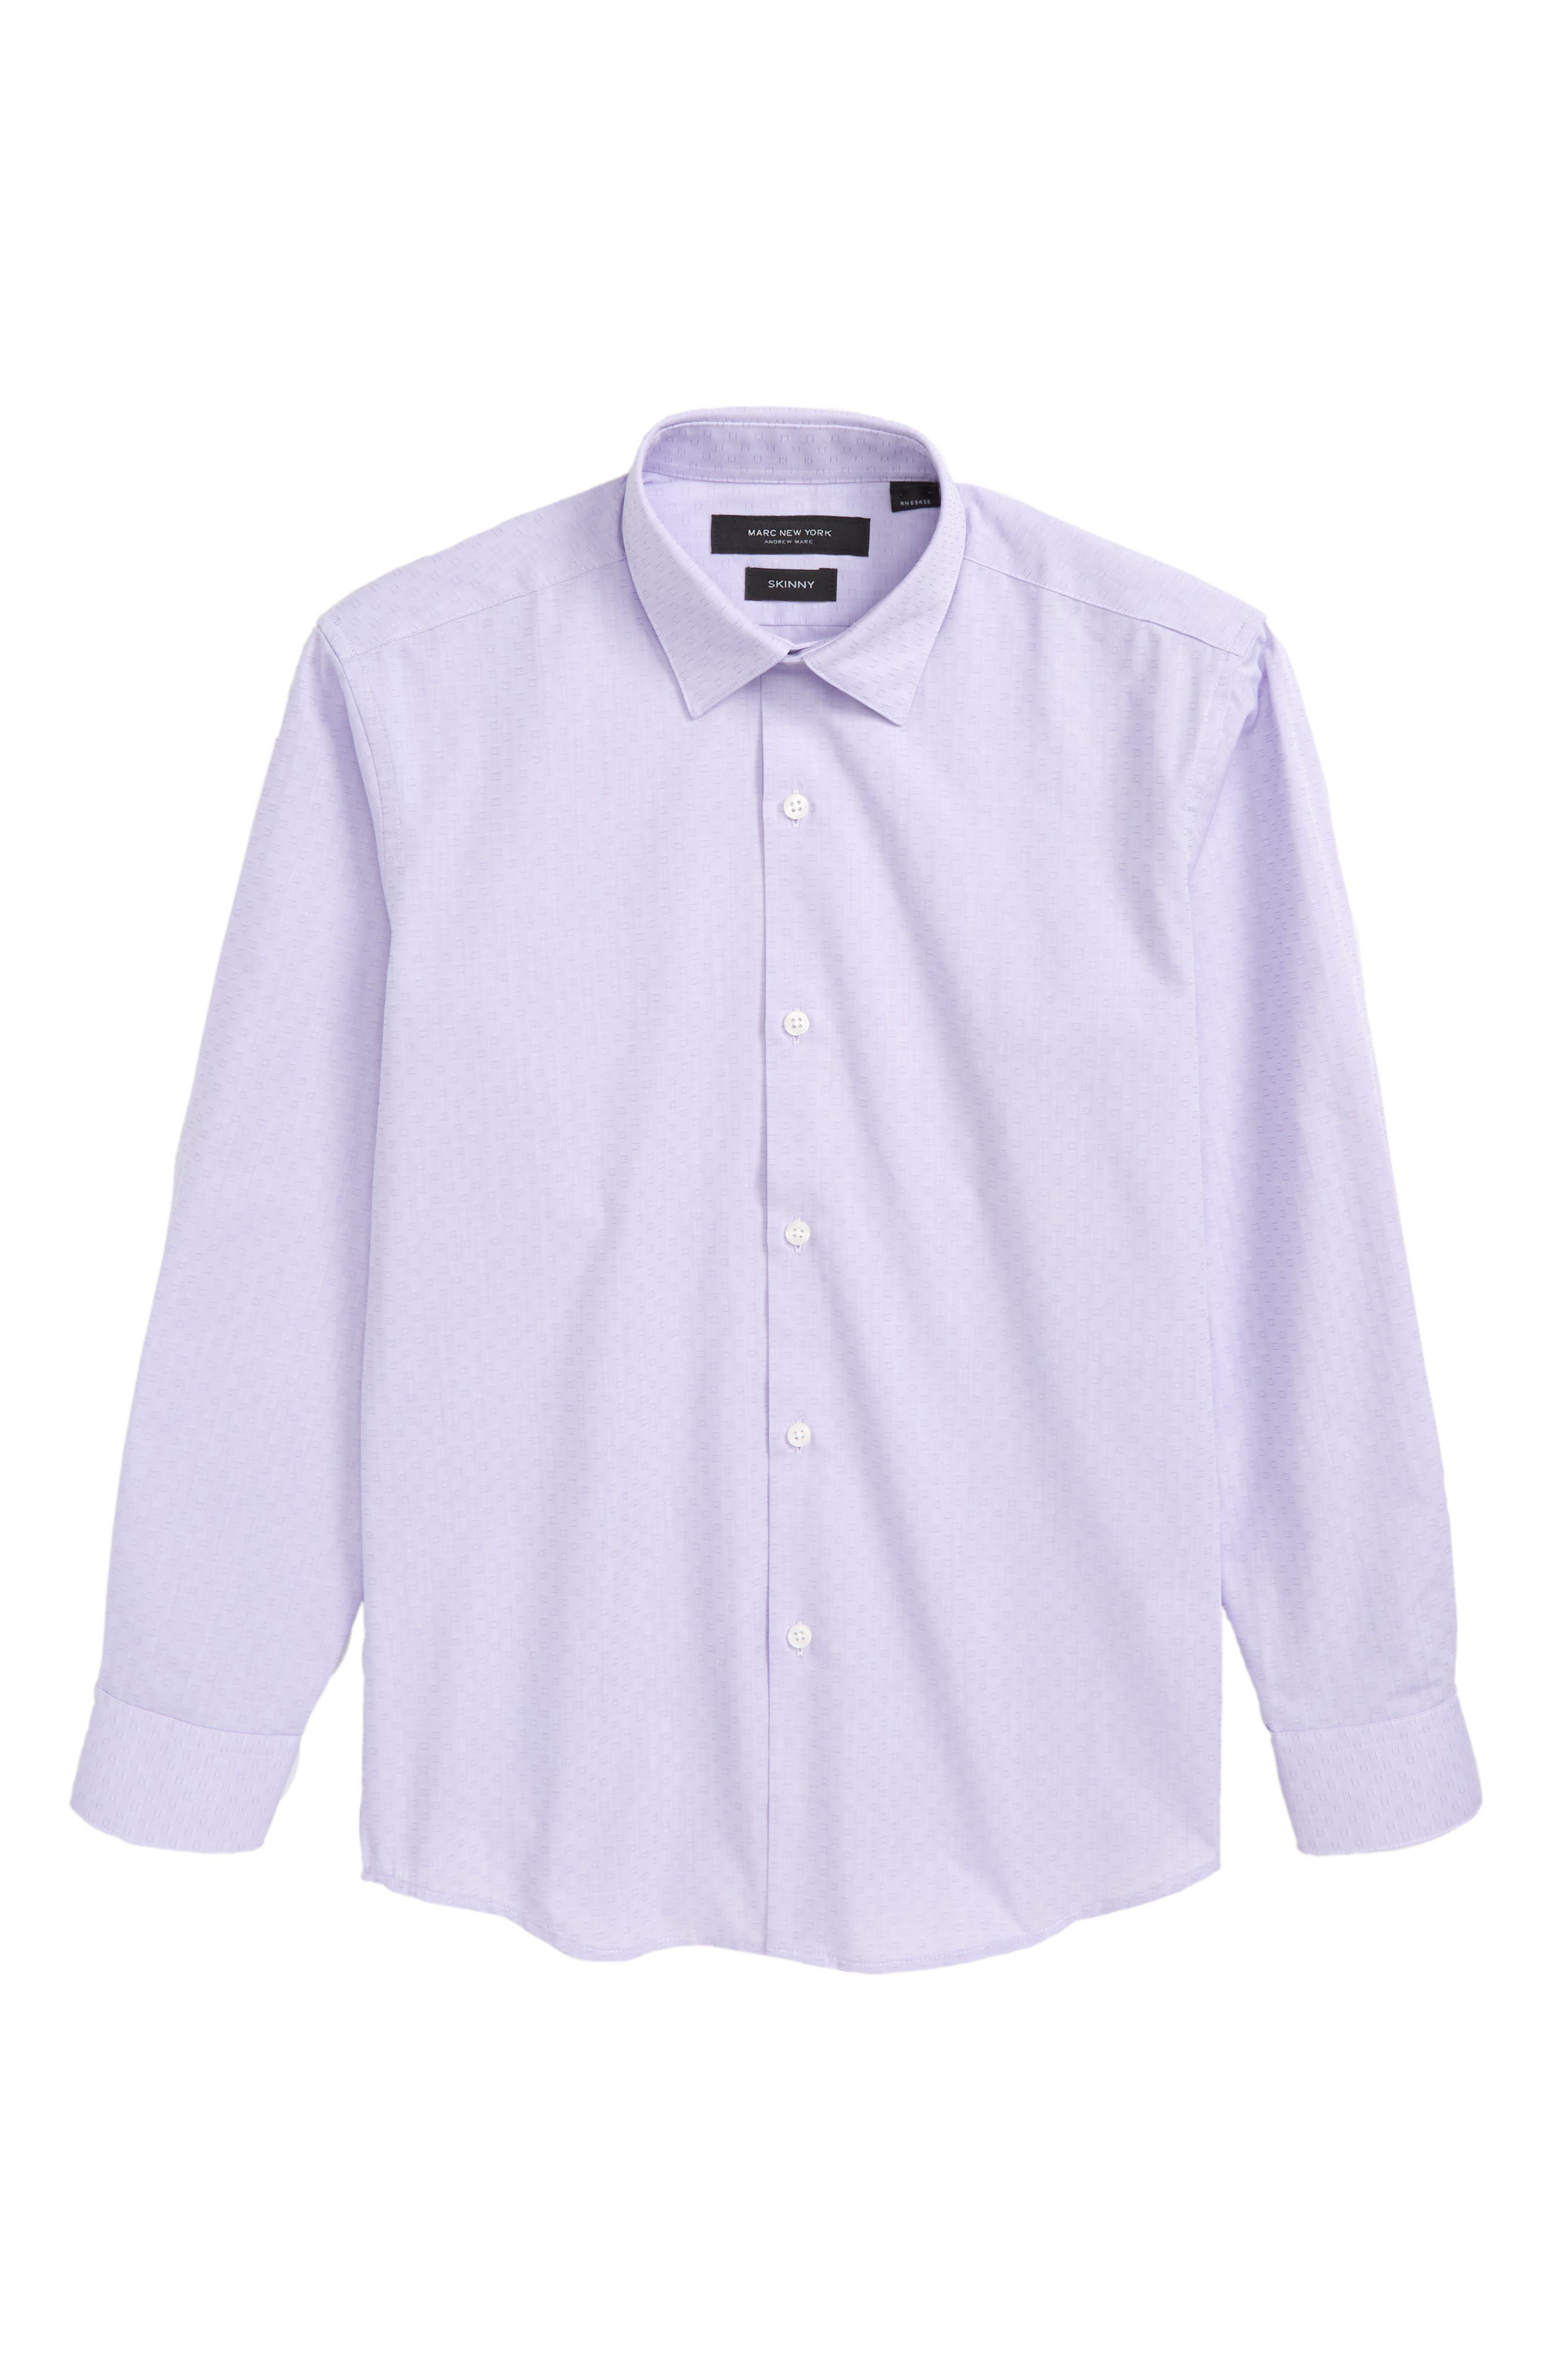 Andrew Marc Check Dress Shirt (Big Boys)